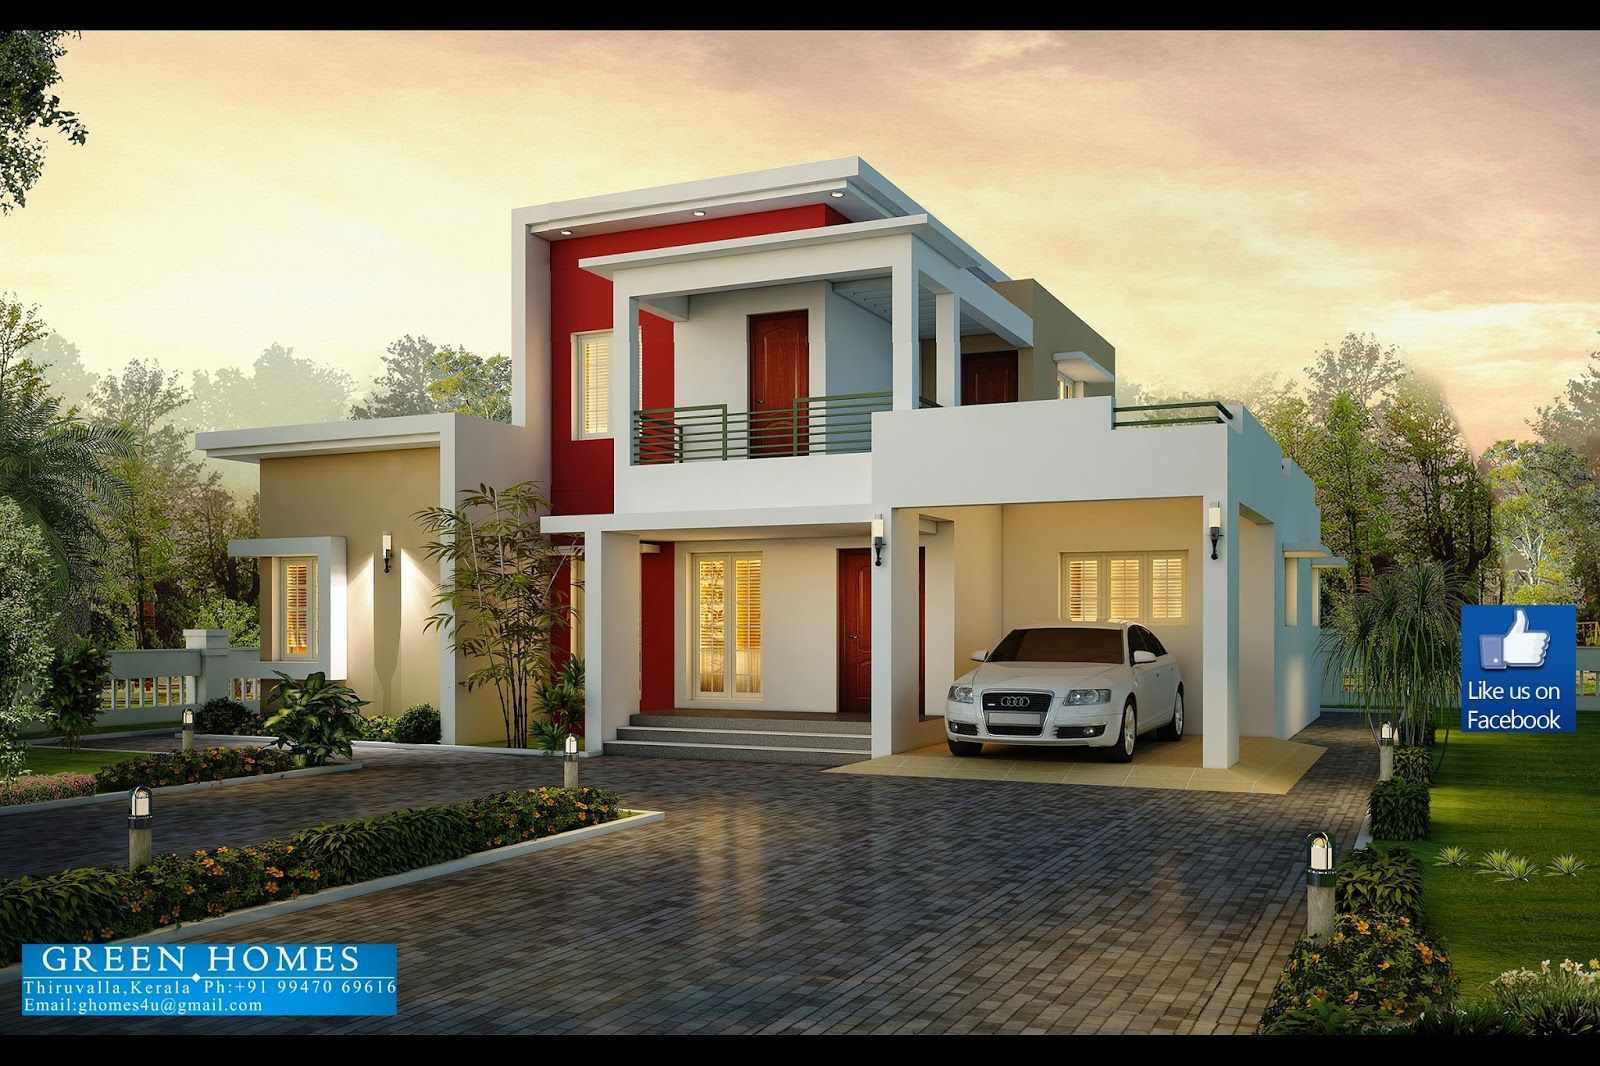 3 bedroom modern house design ideas 2017 2018 for 3 bedroom house plans and designs